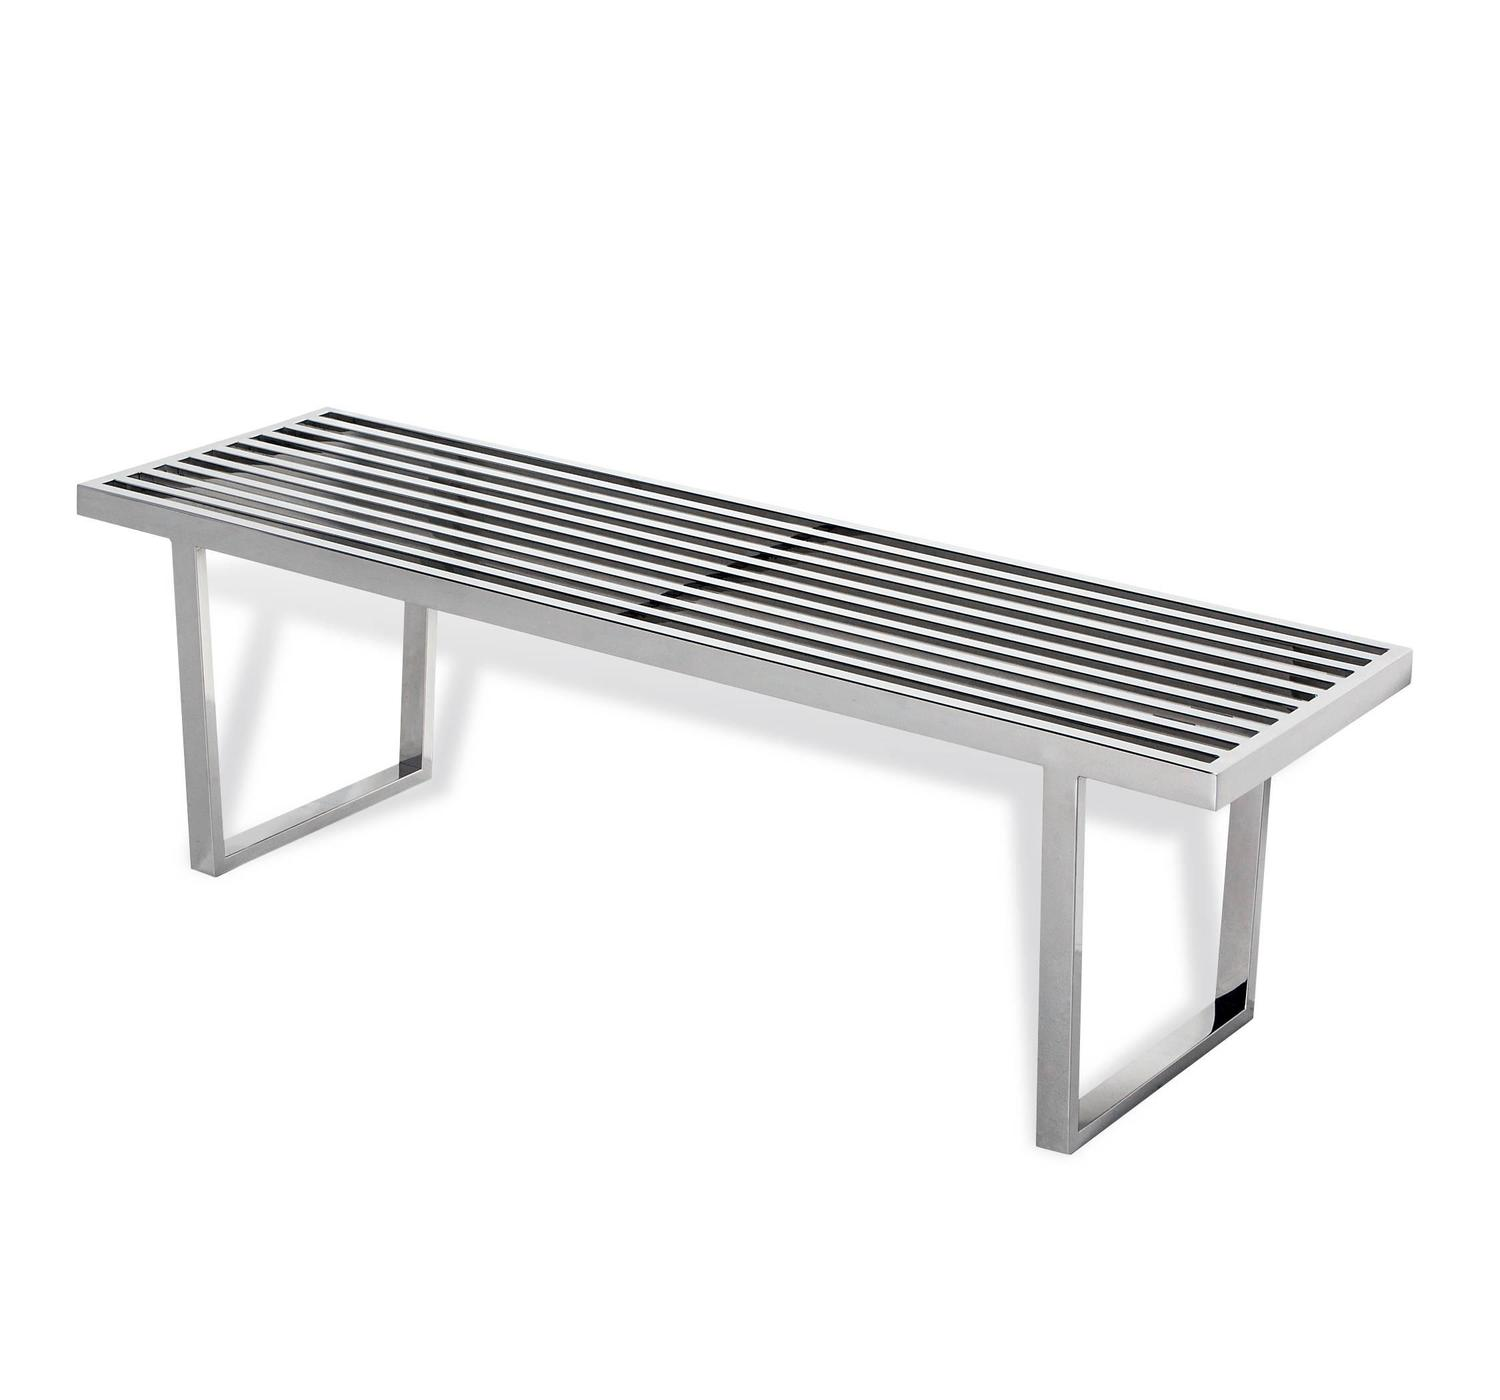 Stainless Steel Slat Bench For Sale At 1stdibs